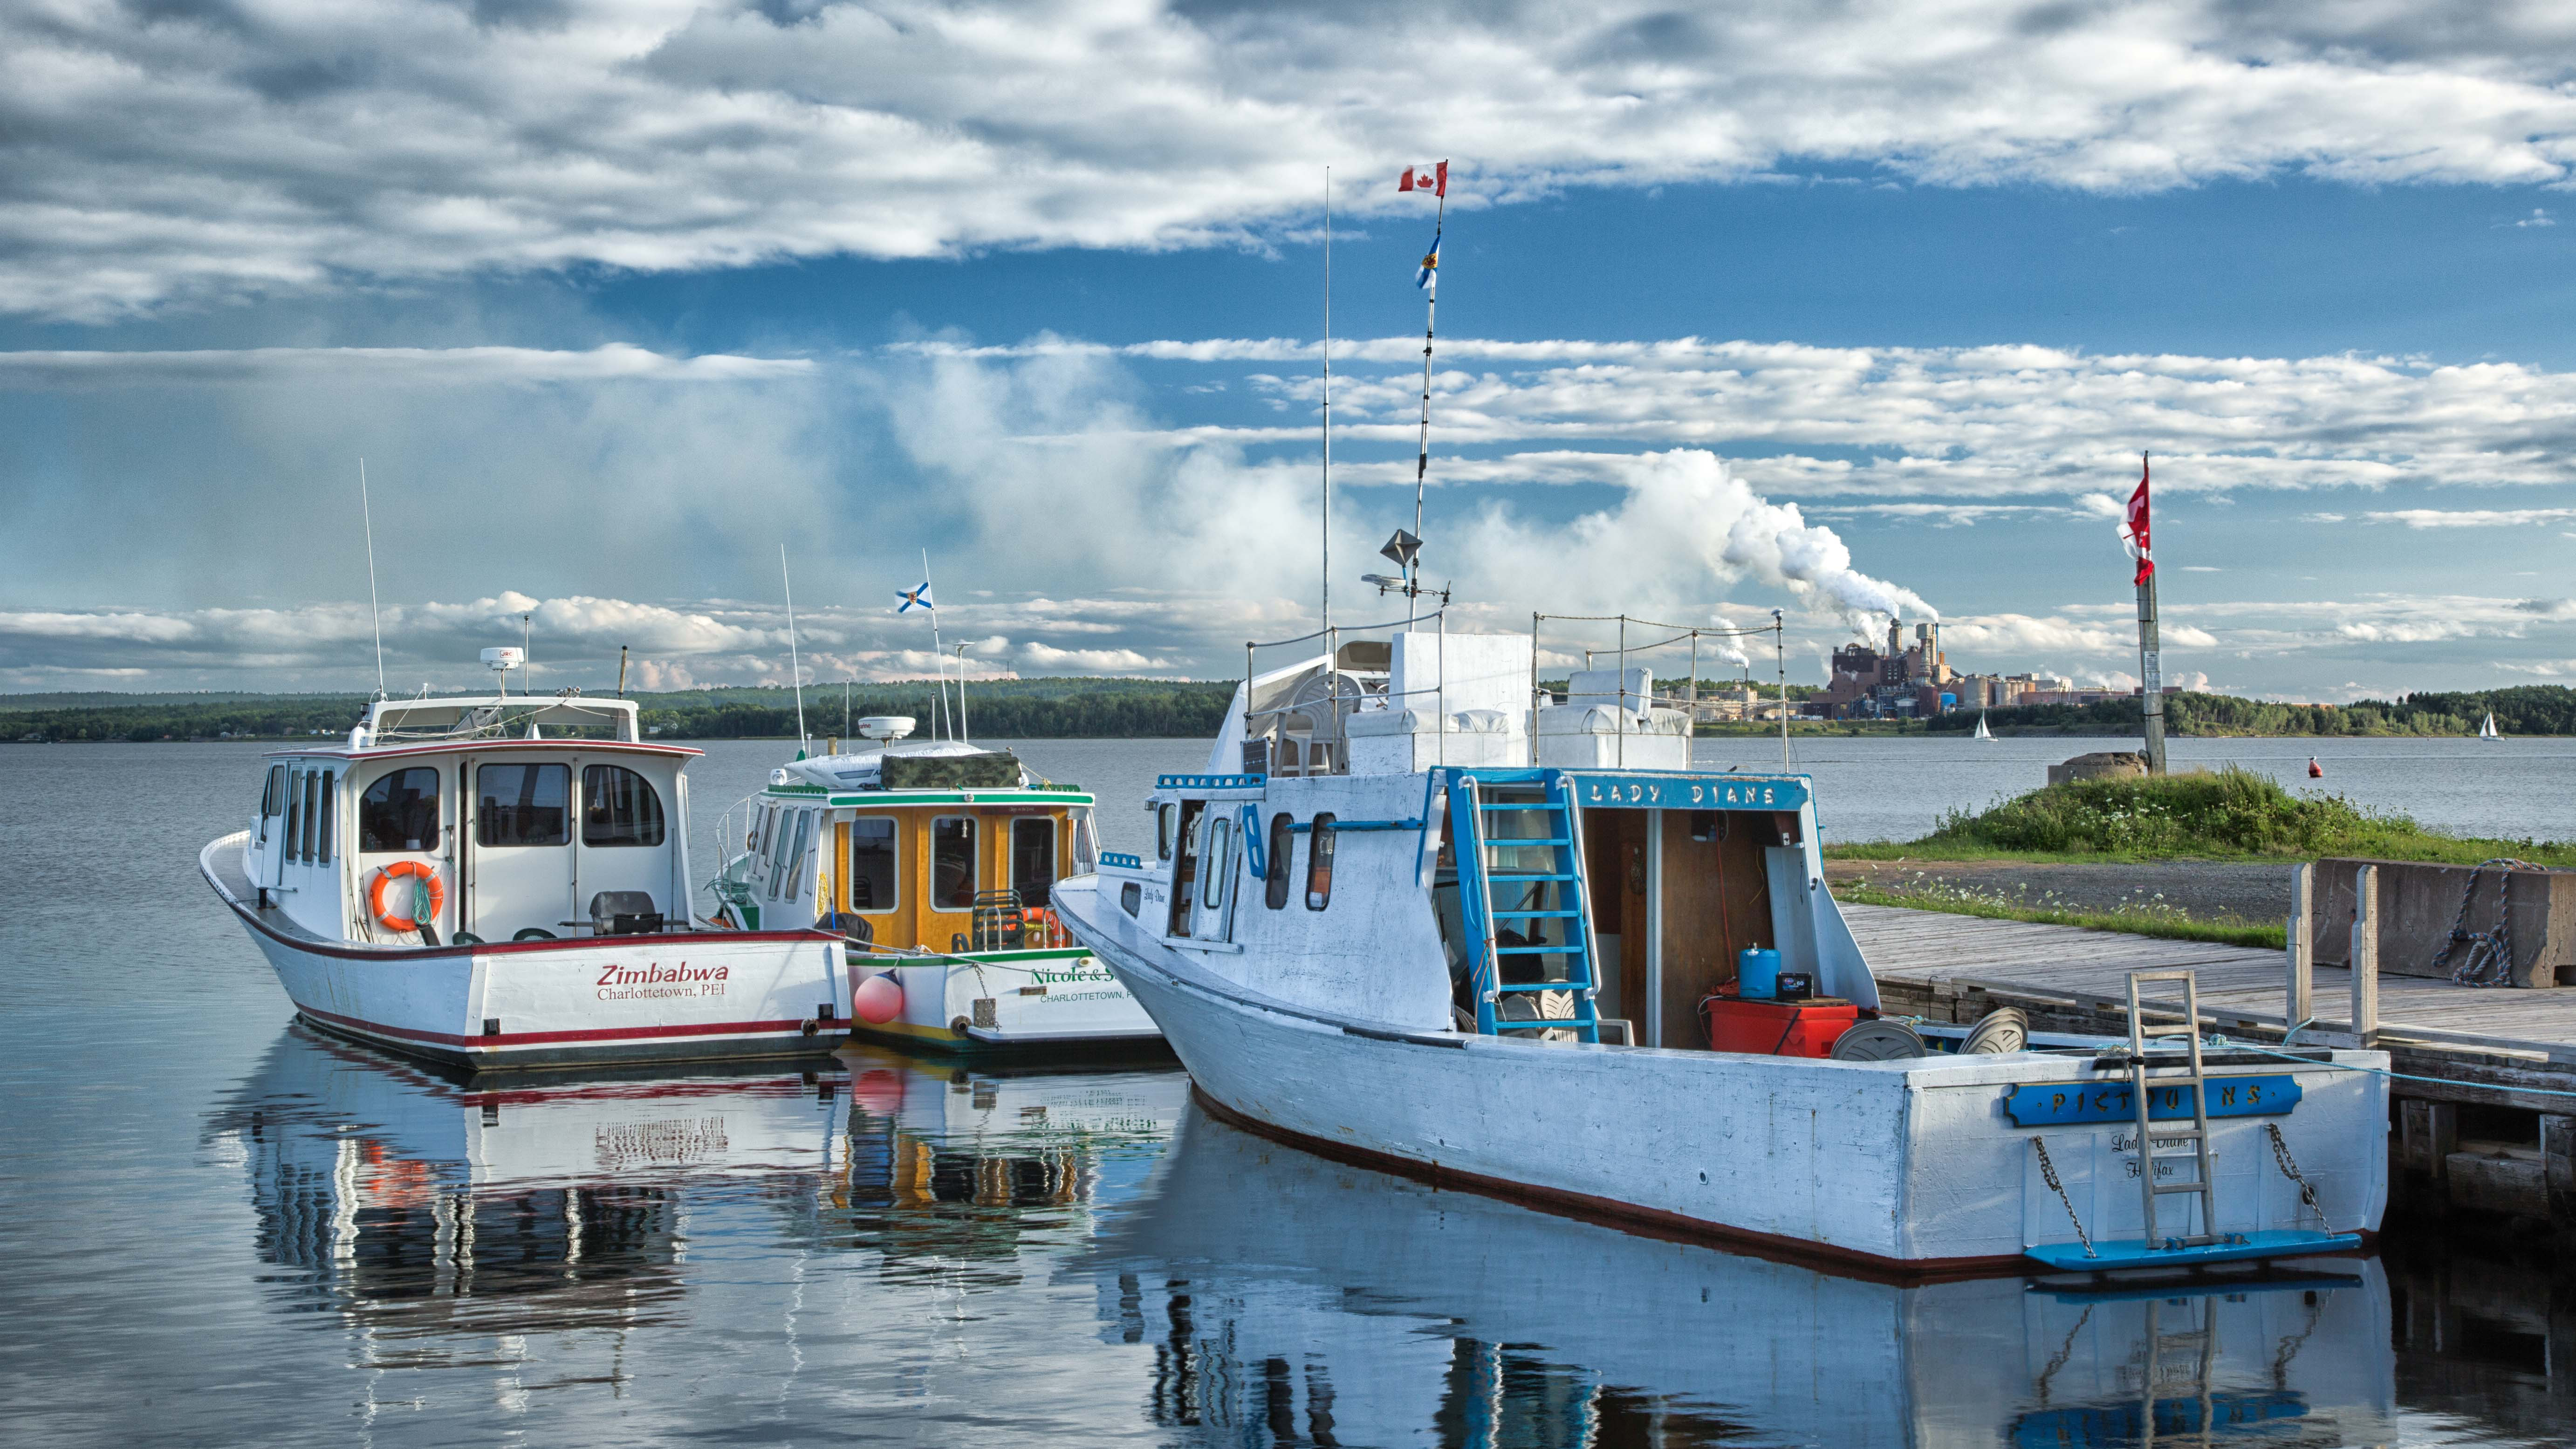 The picturesque waterfront of the historic town of Pictou with Northern Pulp as its backdrop. Photo by Dr. Gerry Farrell